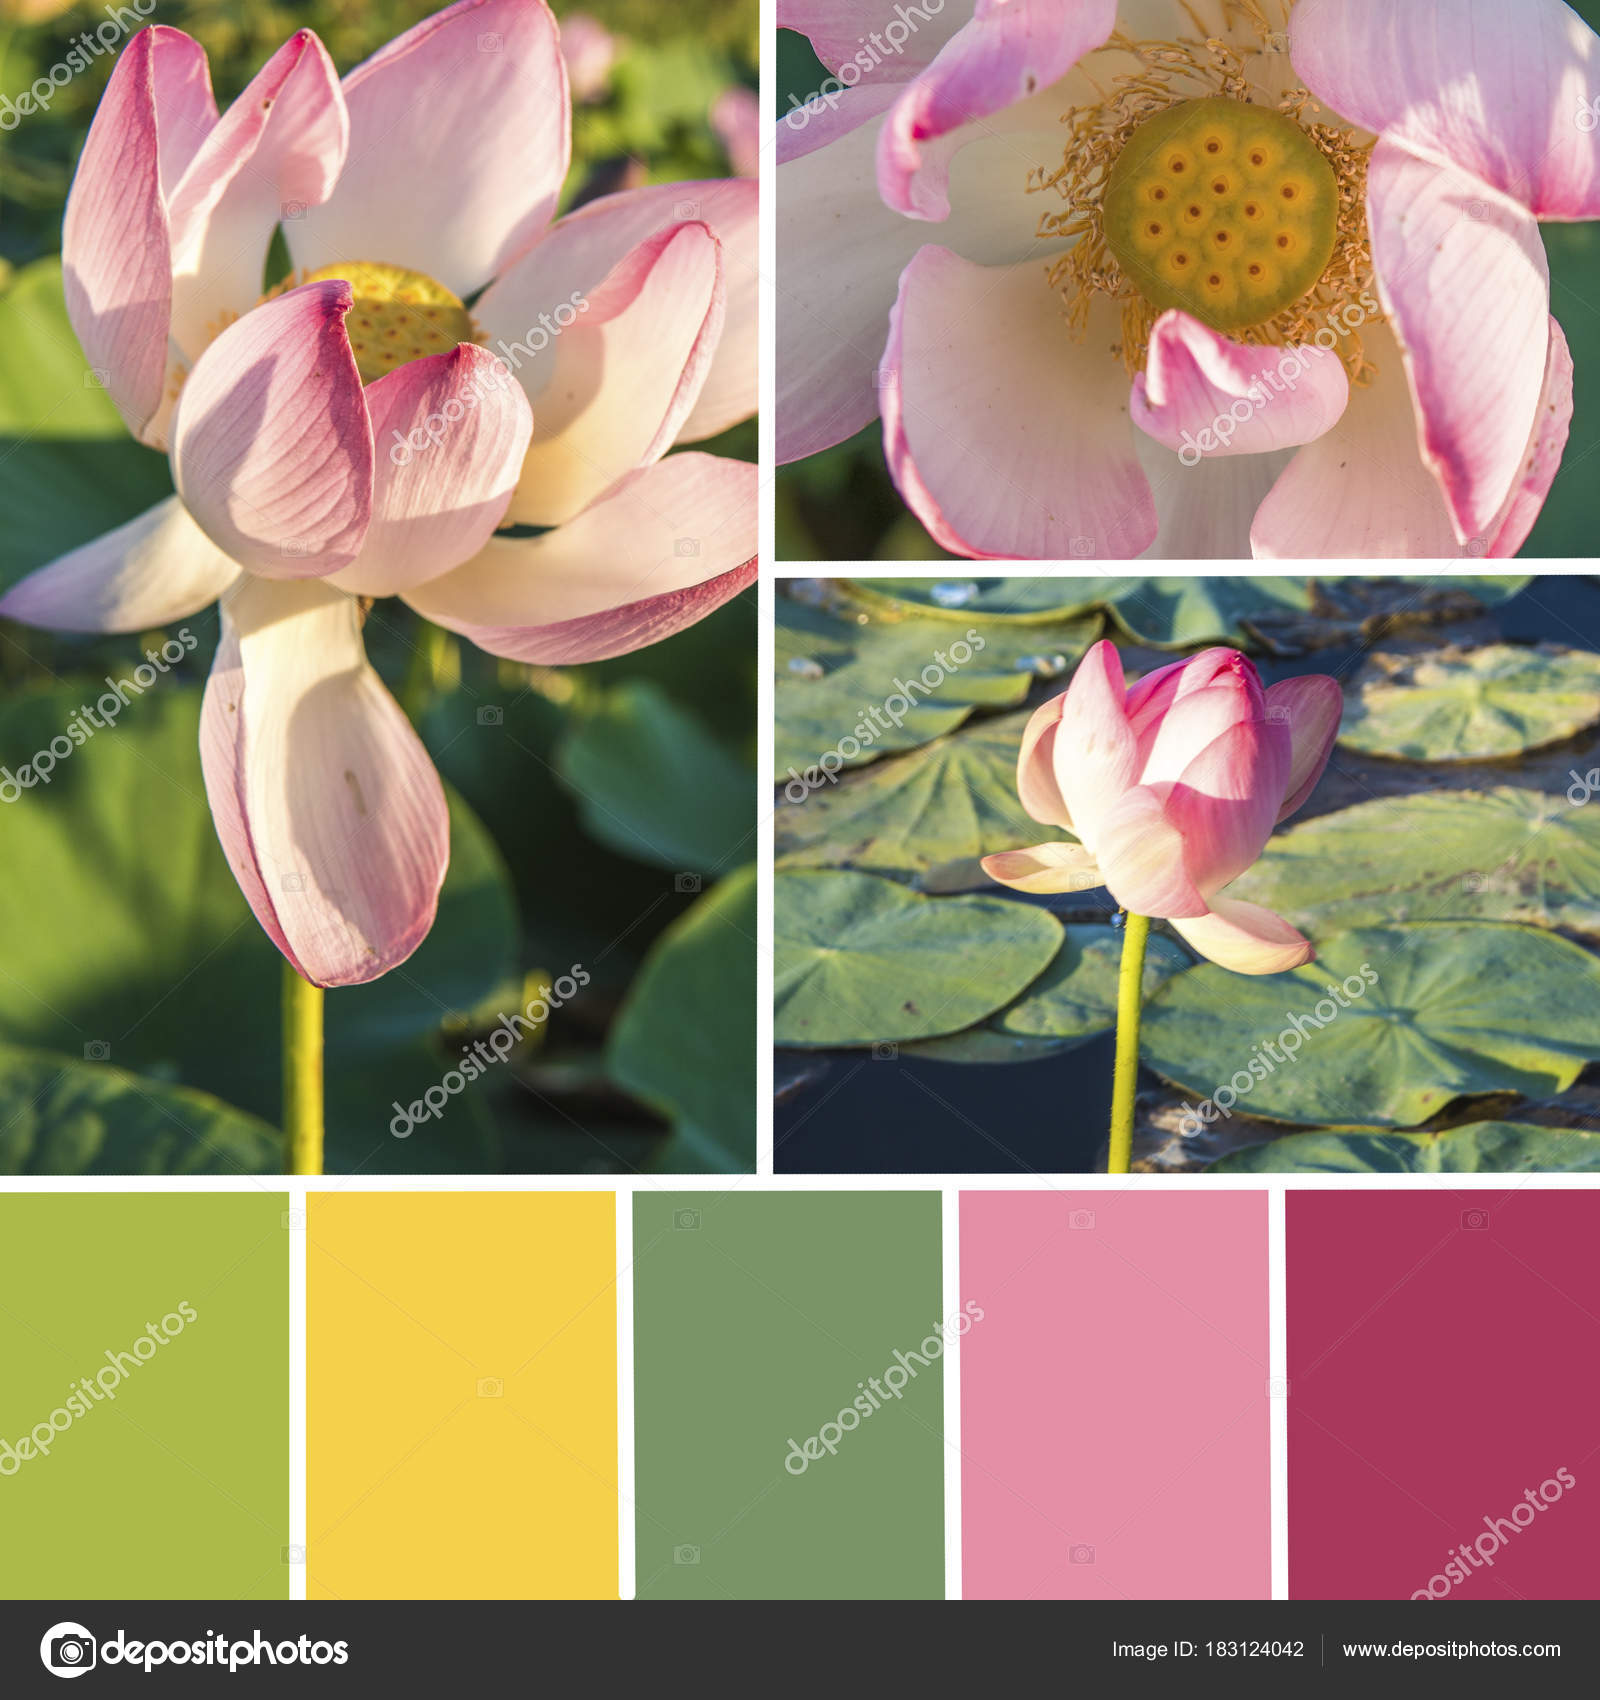 Palette of lotus flowers color matching palette stock photo palette of lotus flowers color matching palette stock photo izmirmasajfo Images